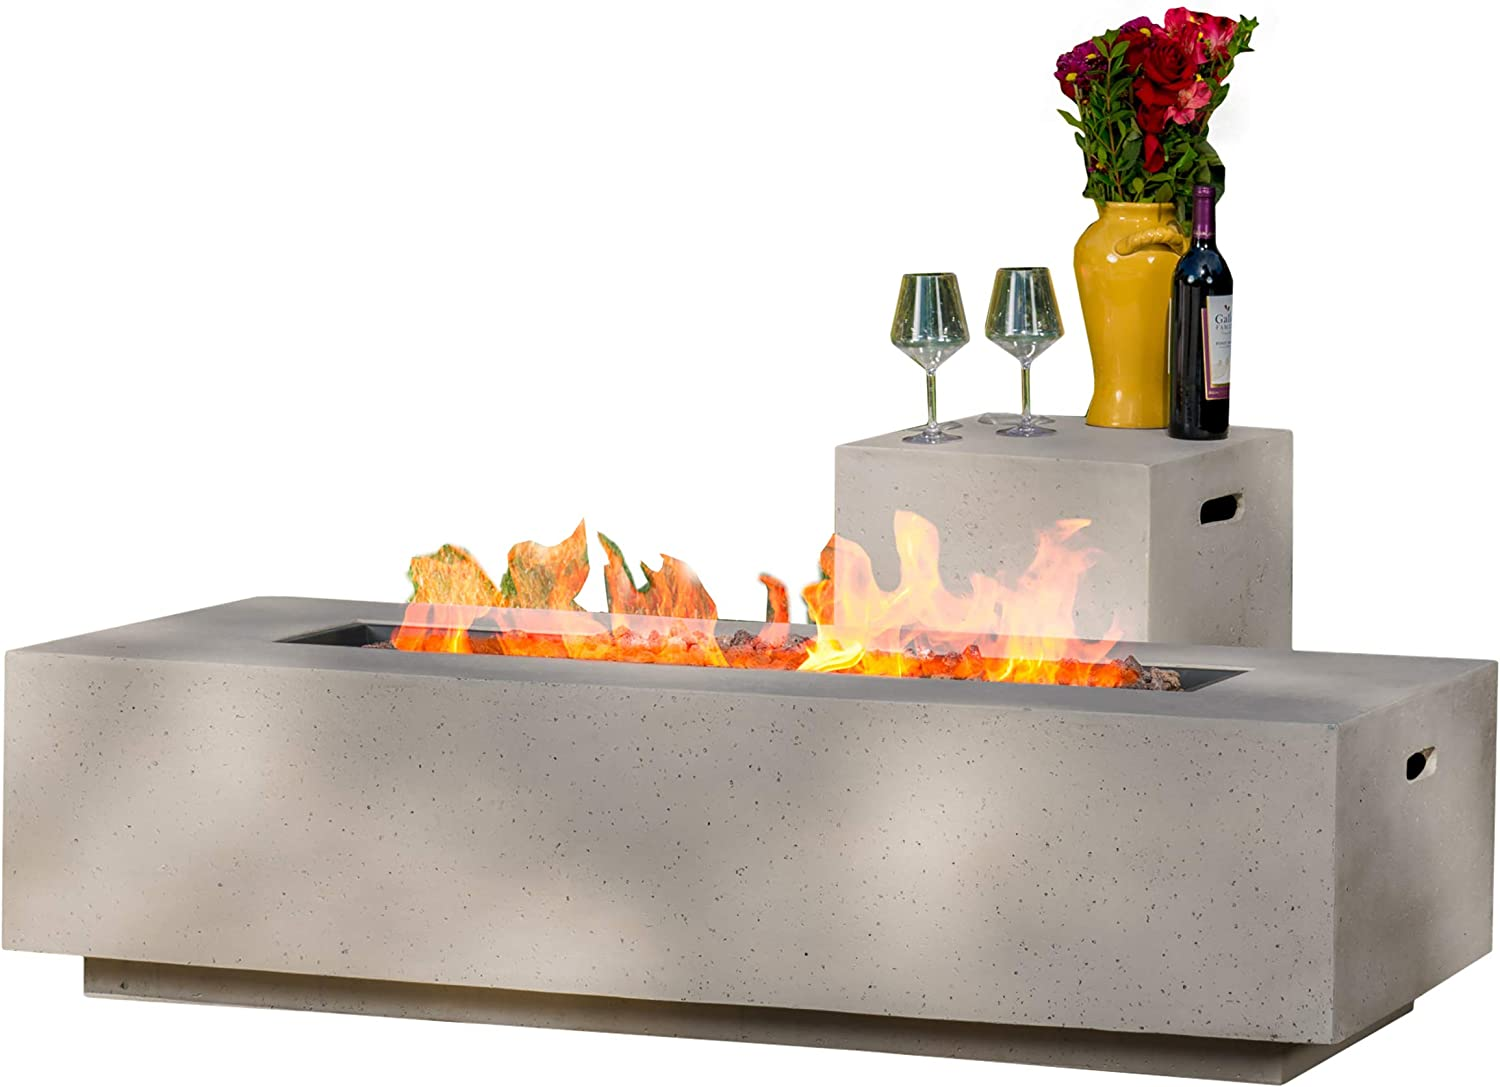 Fire Pit Accessories ELEMENTI Tank Cover Concrete Propane Gas Canister Holder in Boulder Finish